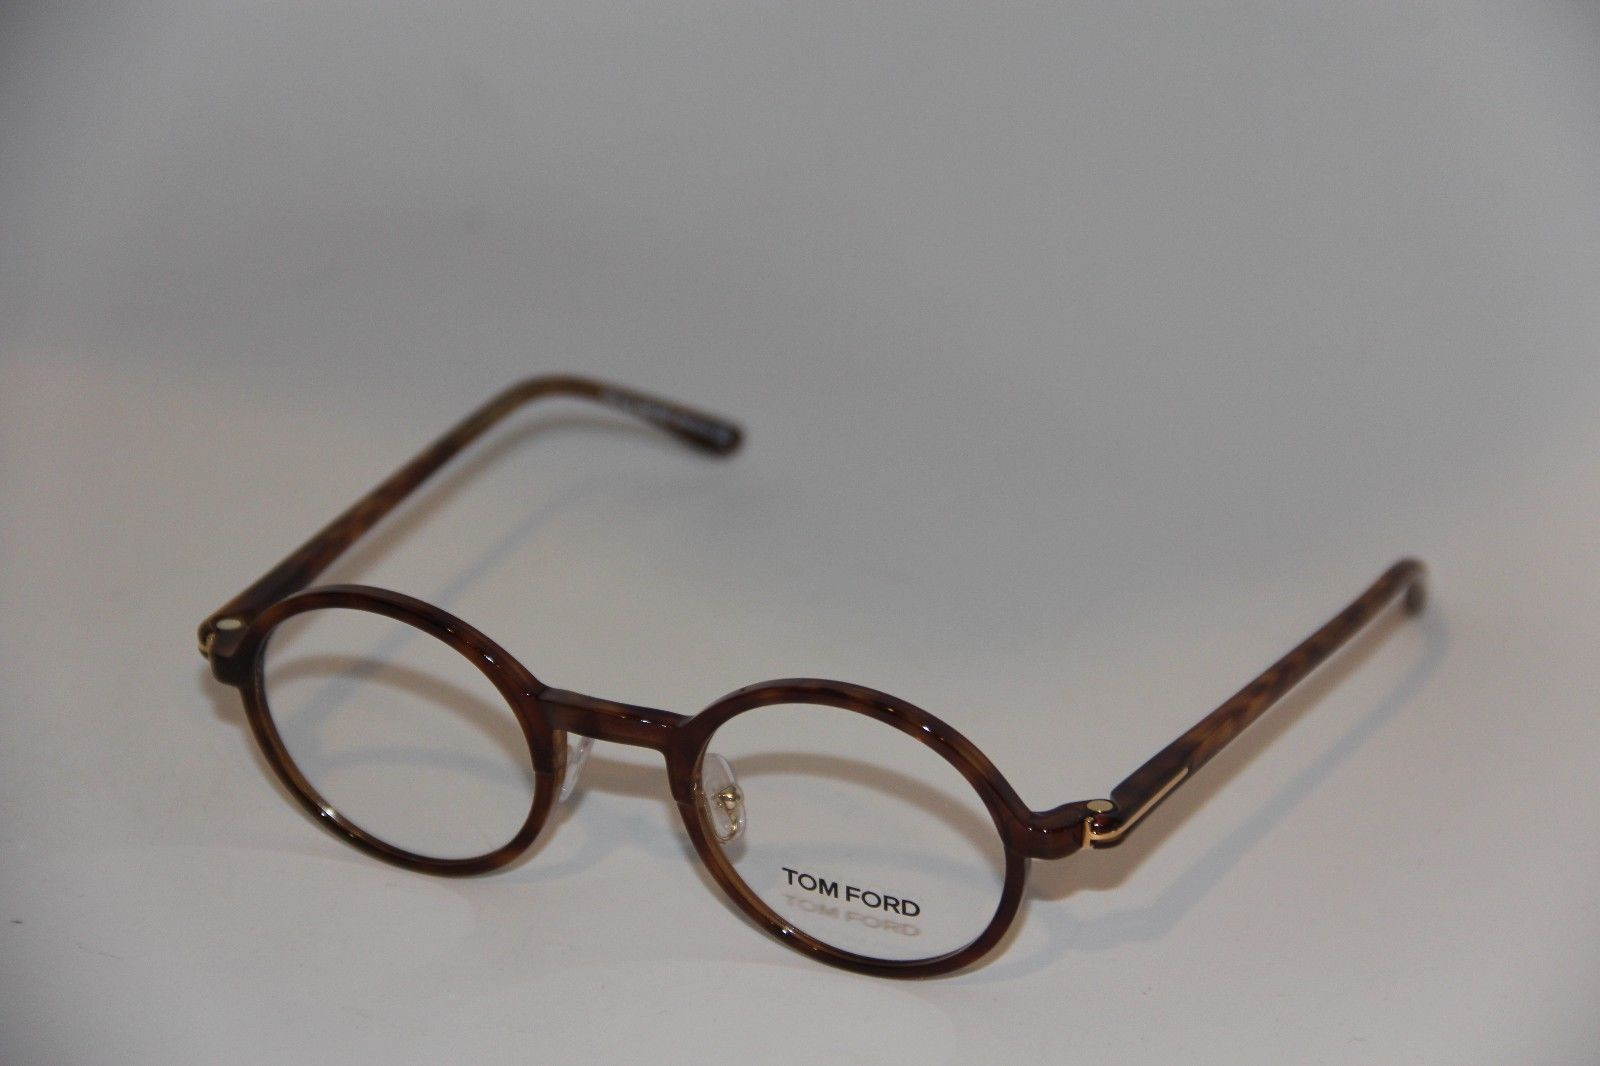 37c3608b9d7 New Tom Ford Tf 5254 052 Tortoise Round Frame Authentic Eyeglasses ...